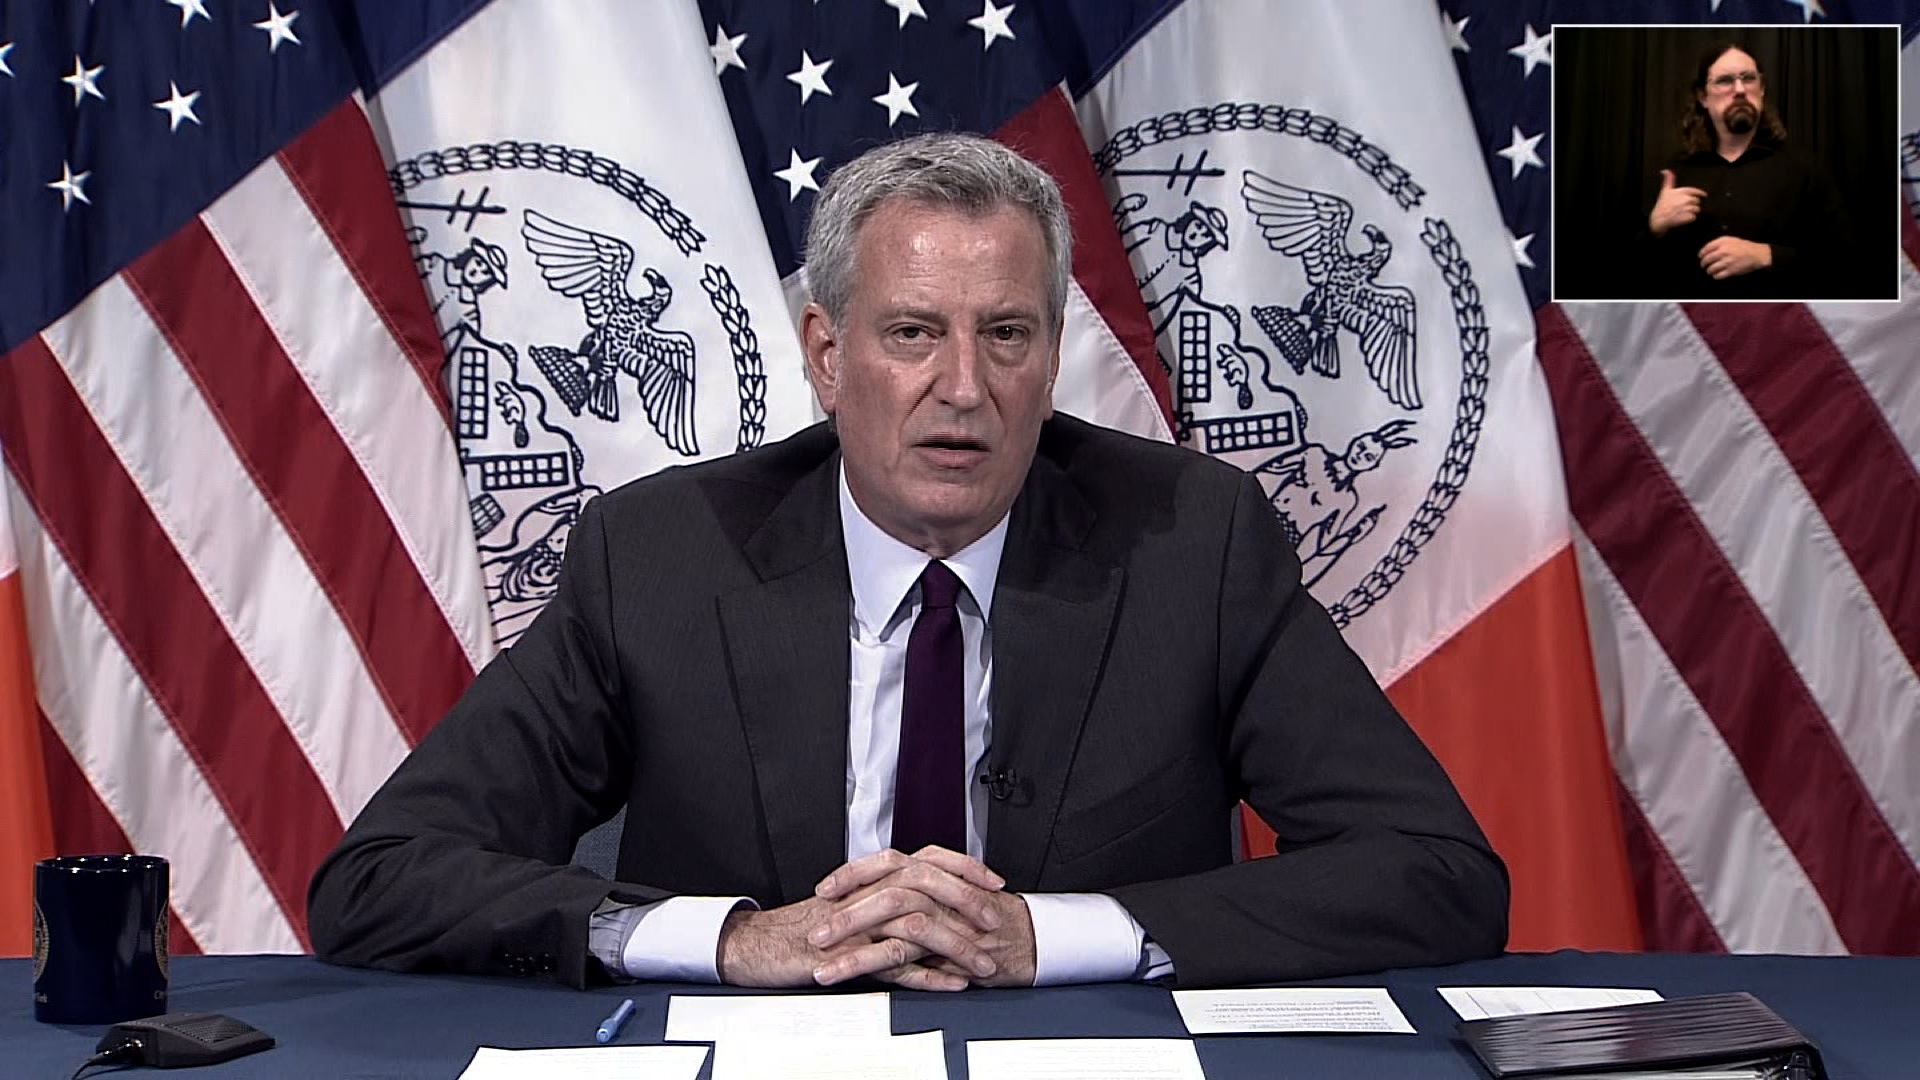 New York City Mayor Bill de Blasio speaks during a press conference in New York on June 29.